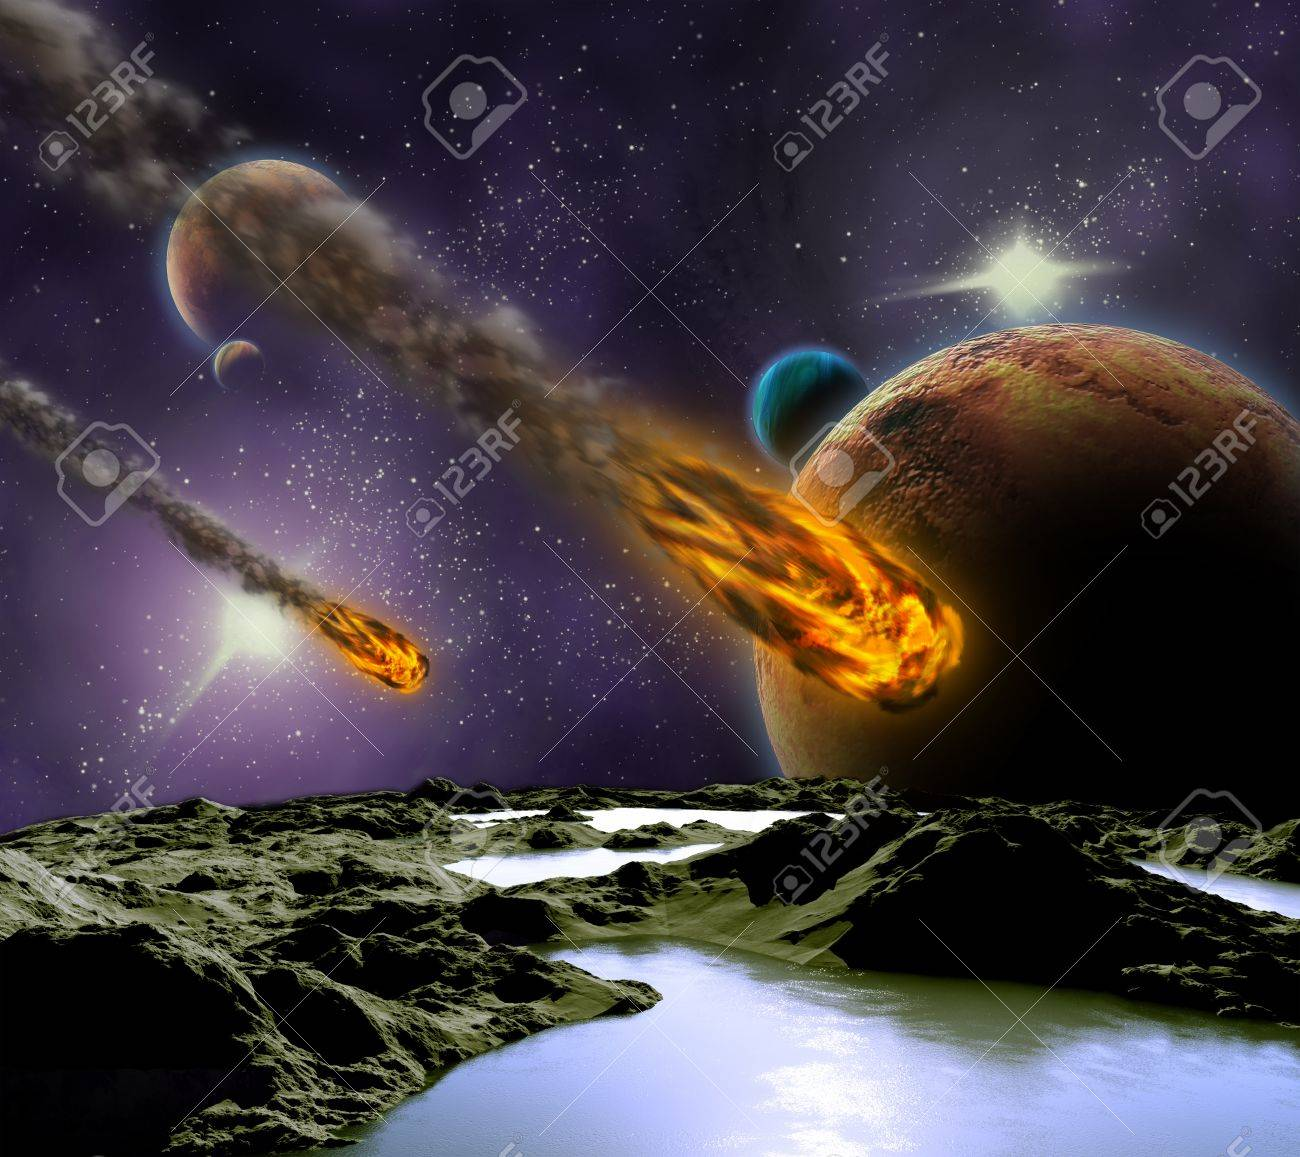 Attack of the asteroid on the planet in the universe. Abstract illustration of a meteor impact. Stock Illustration - 12781097